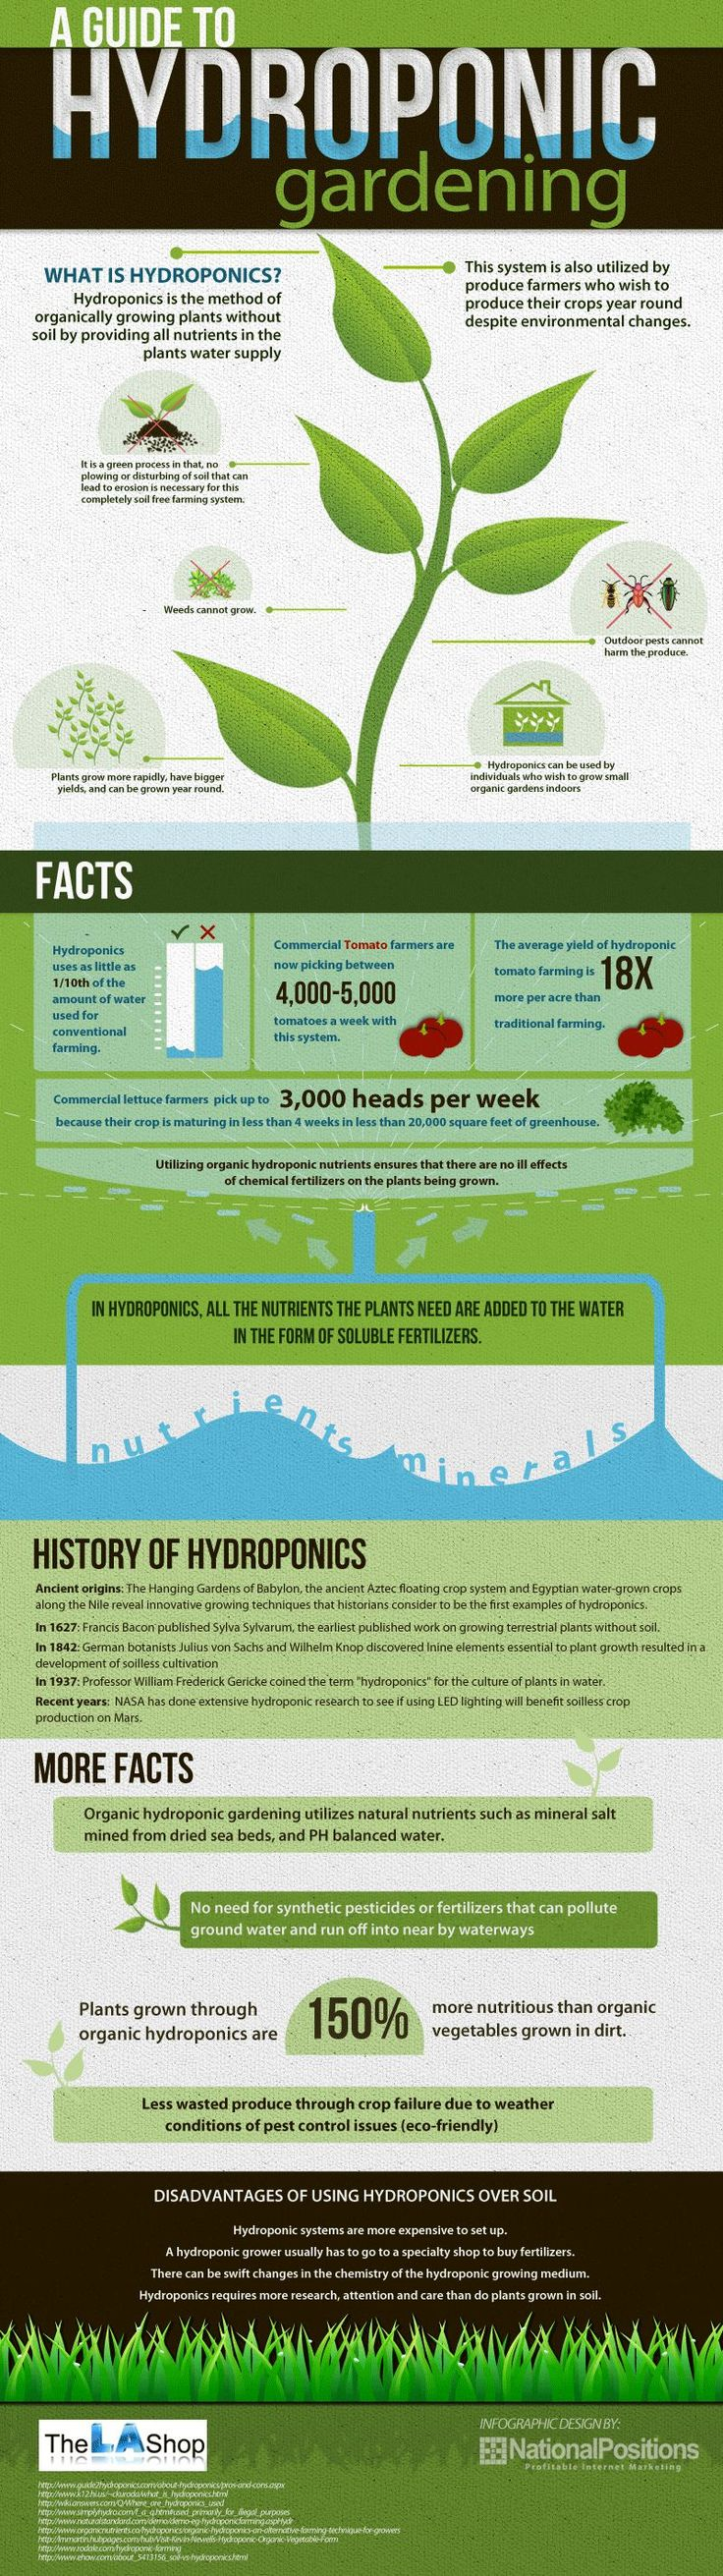 A Guide to Hydroponic Gardening  [by TheLAShop -- via #tipsographic]. More at tipsographic.com